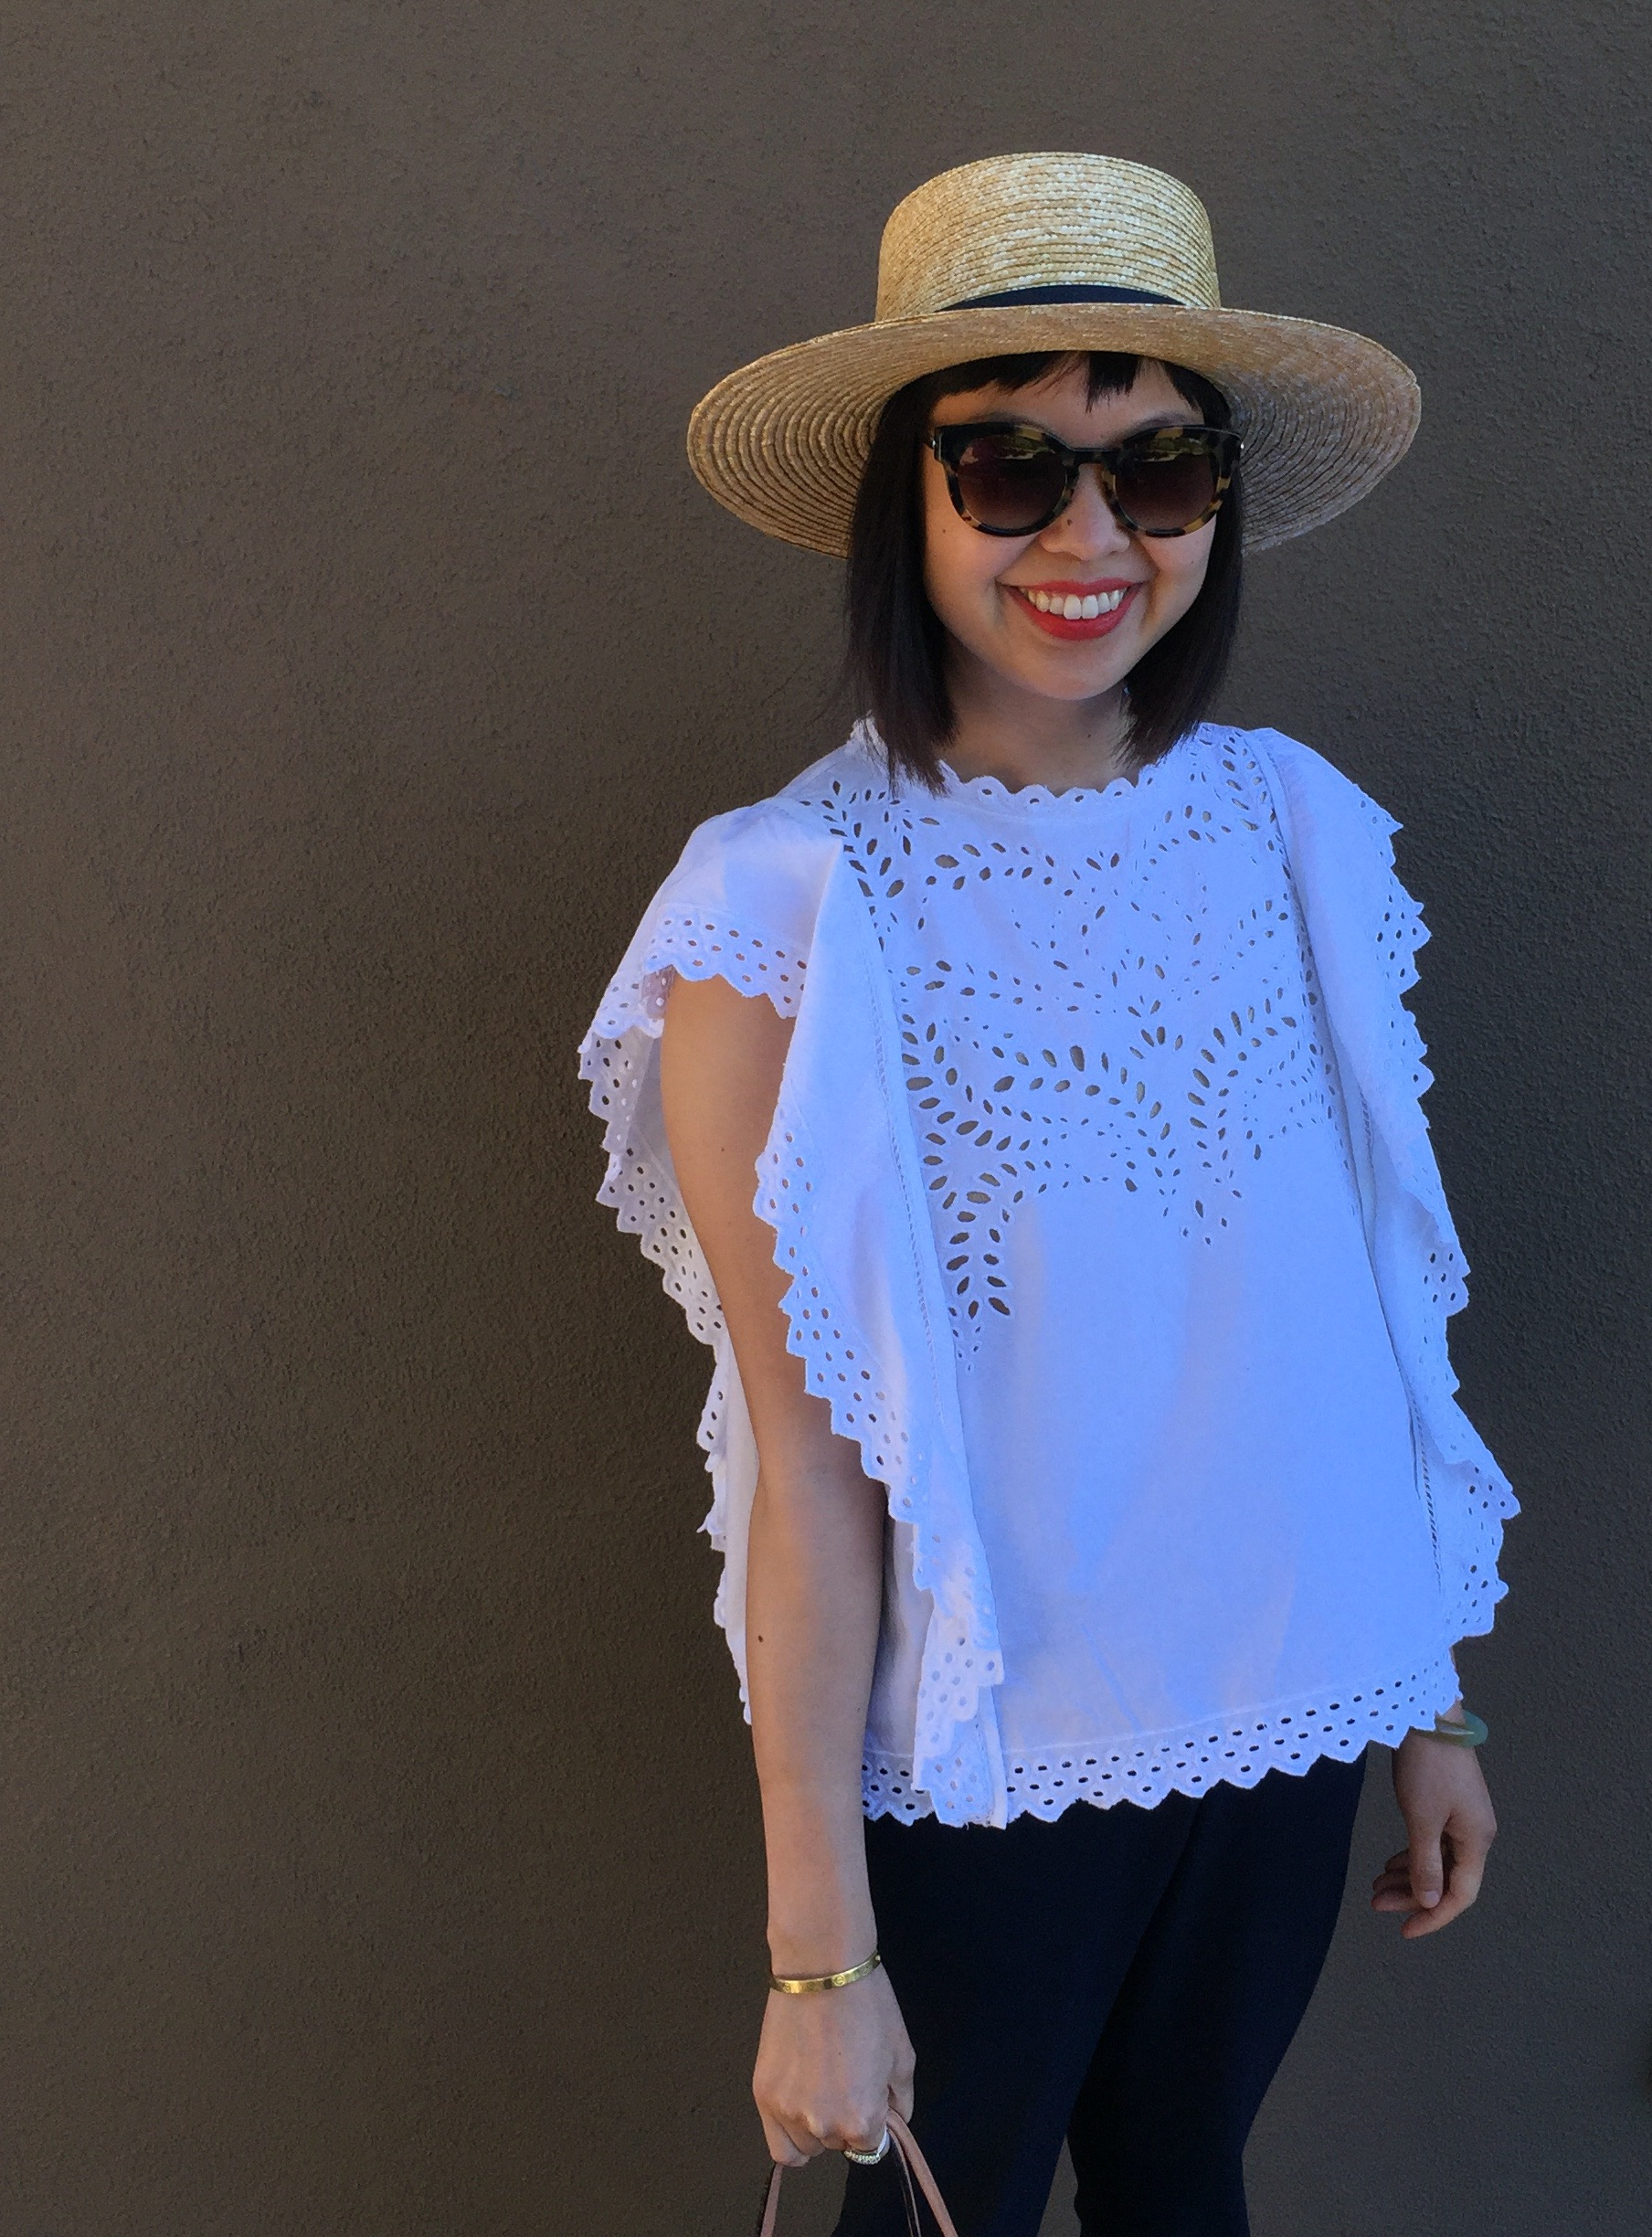 7c0a7308bc6 ... etoile by isabel marant salvia top details etoile by isabel marant  salvia top and janessa leone klint straw hat ...